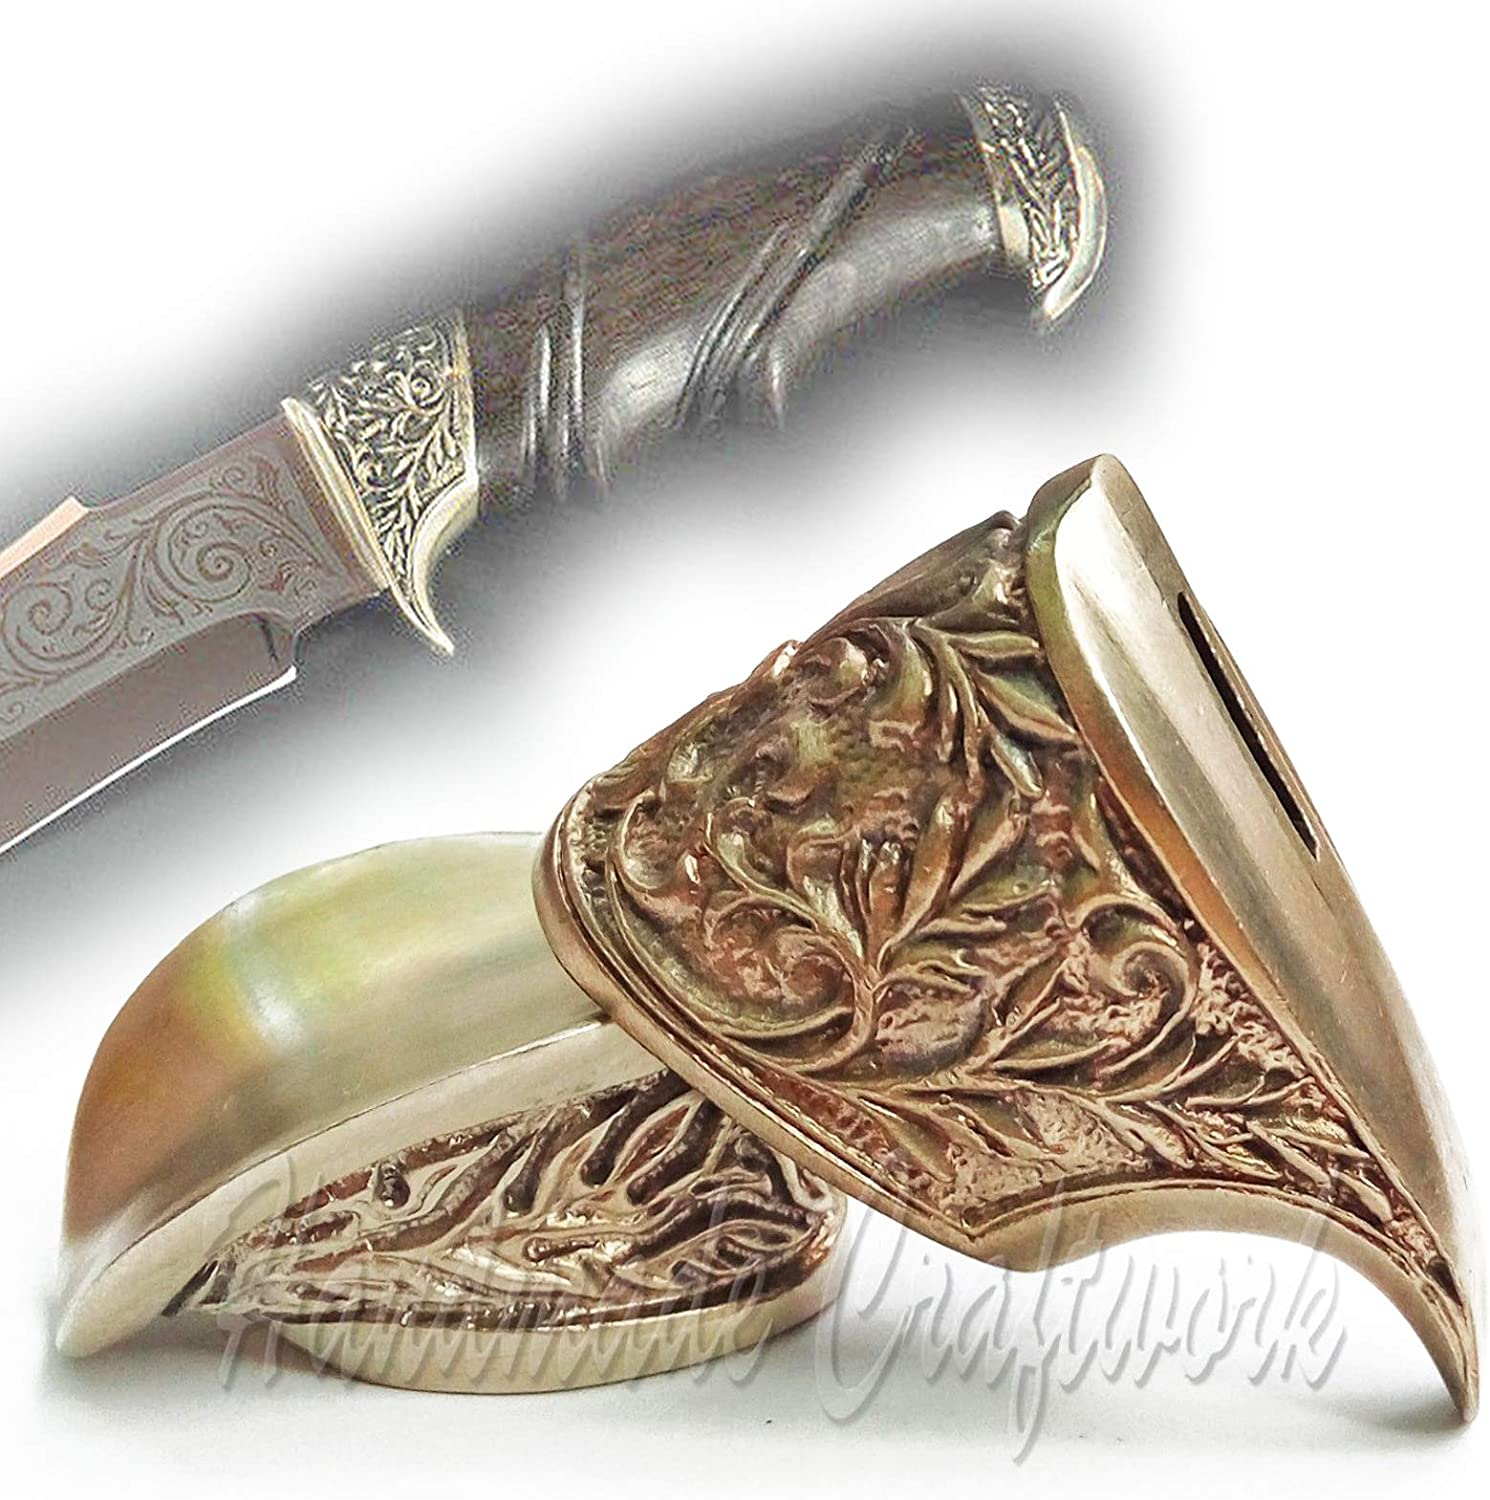 CooB Knife Finger Guard Bolster Pommel Set. Amazing Hand-Casted Metal Knife Supplier Accessories for Custom Knives Handle Making. Great Collection of 45 Sets